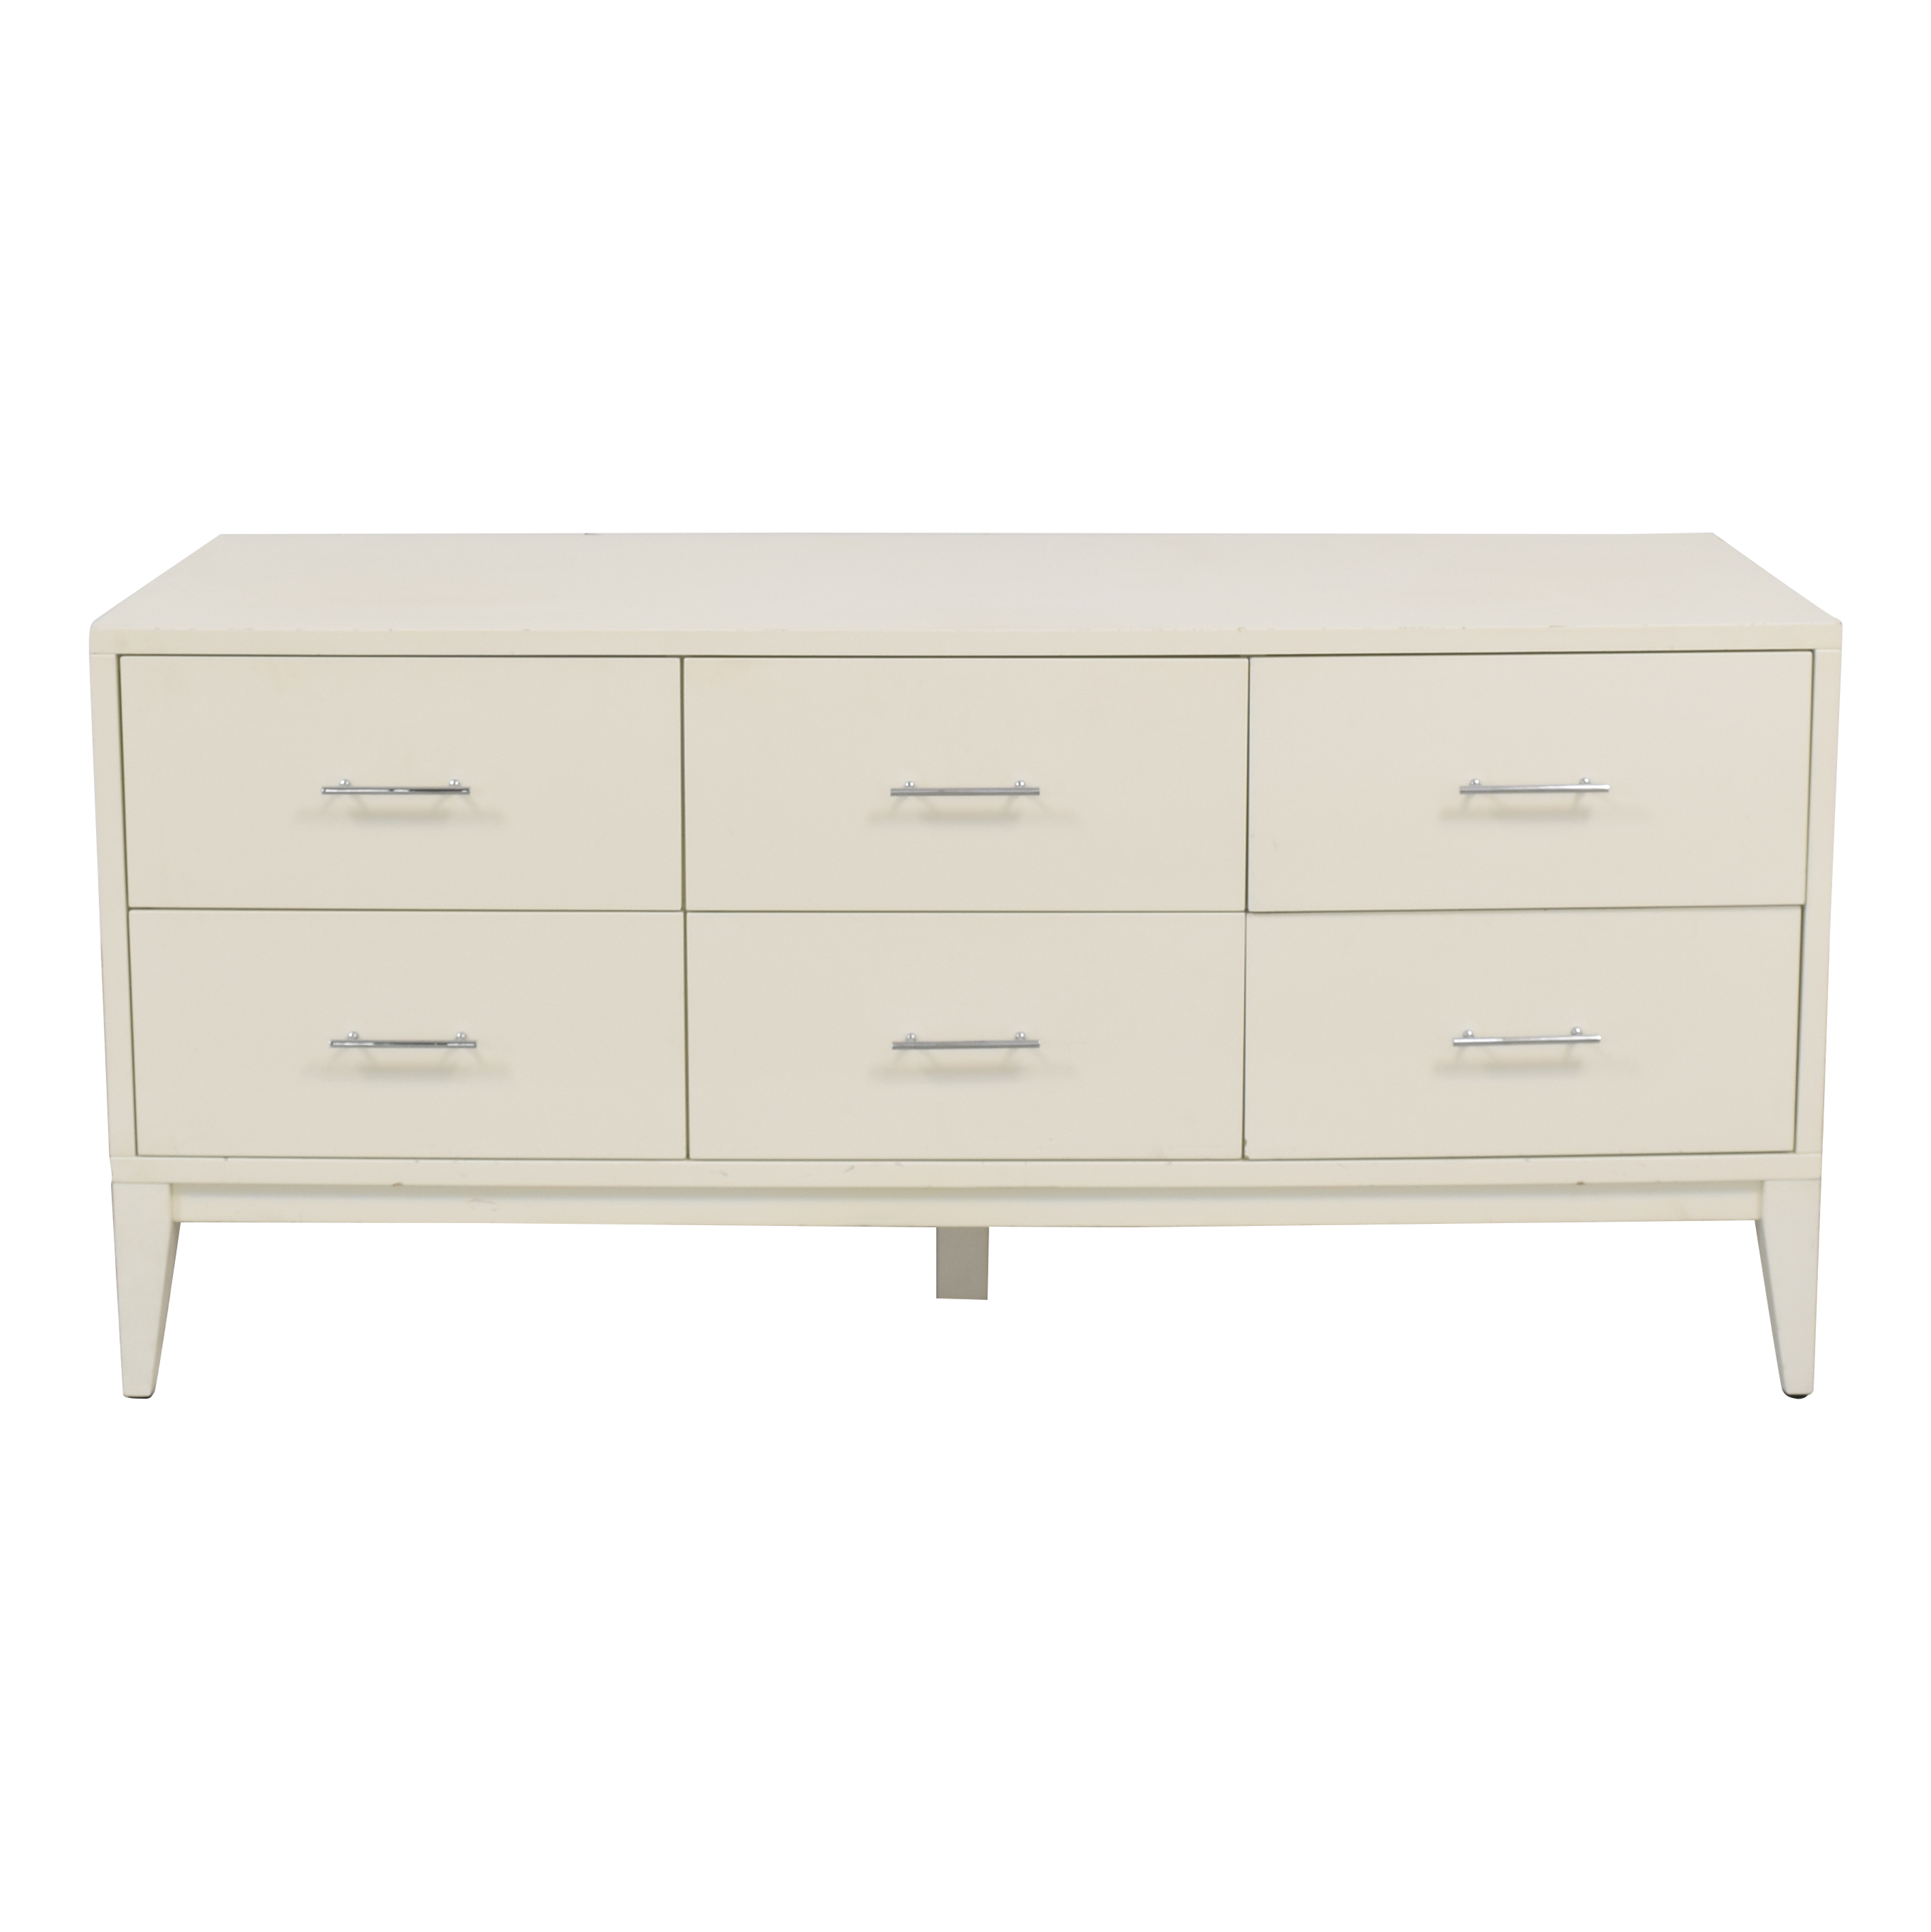 West Elm Narrow Leg Six Drawer Dresser / Storage